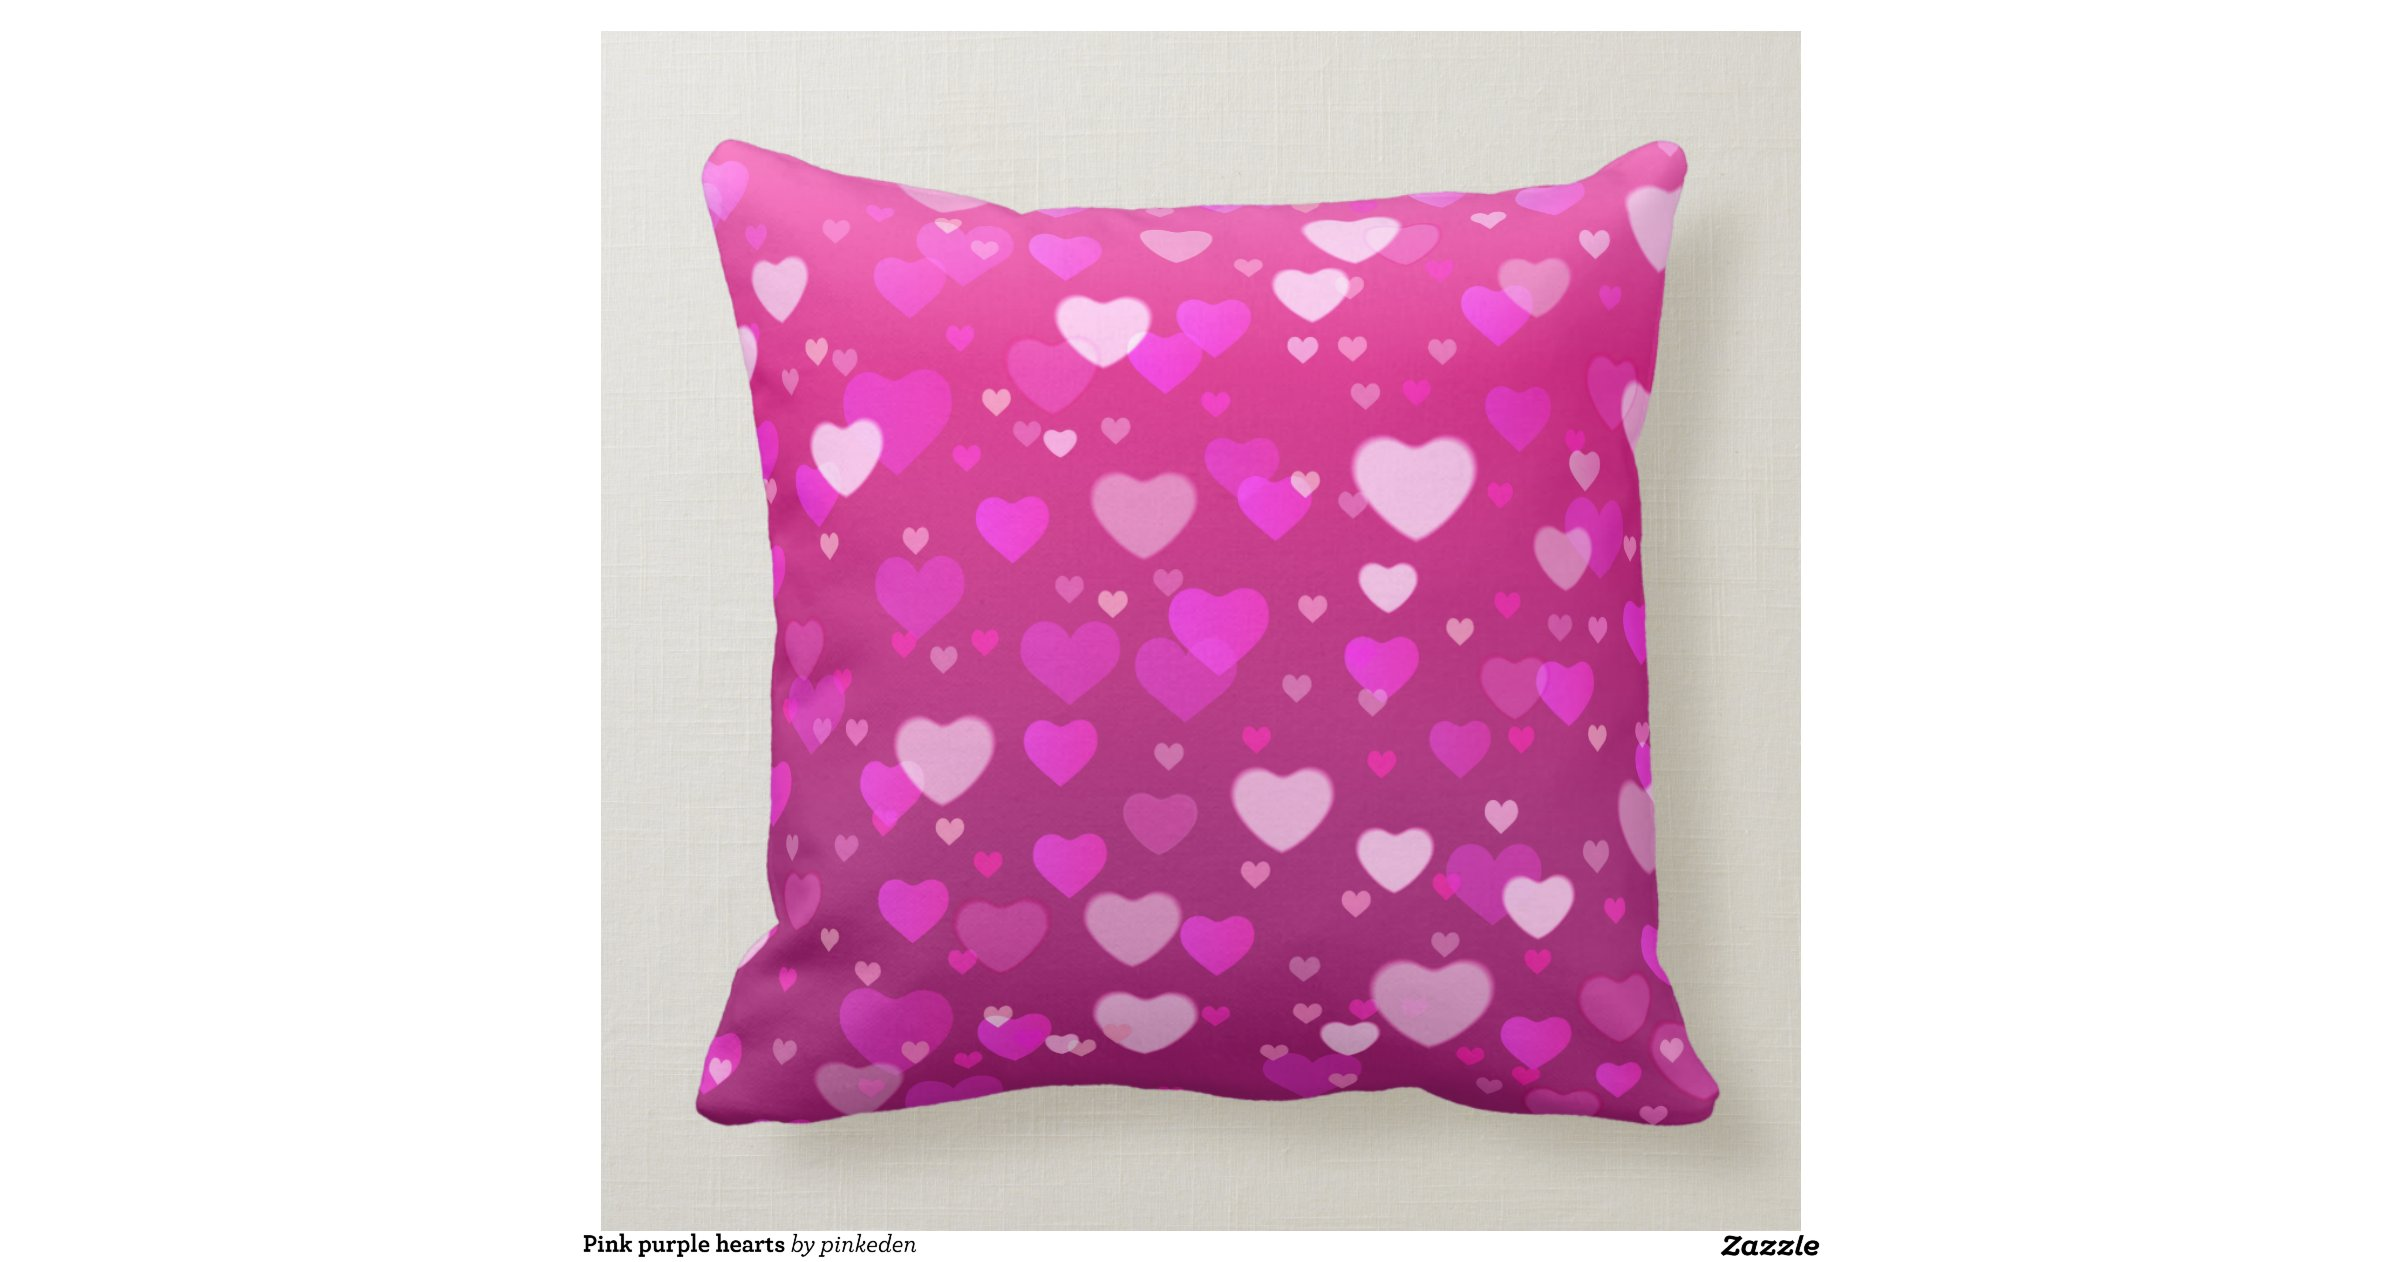 Pink Purple Decorative Pillows : Pink purple hearts throw pillows Zazzle